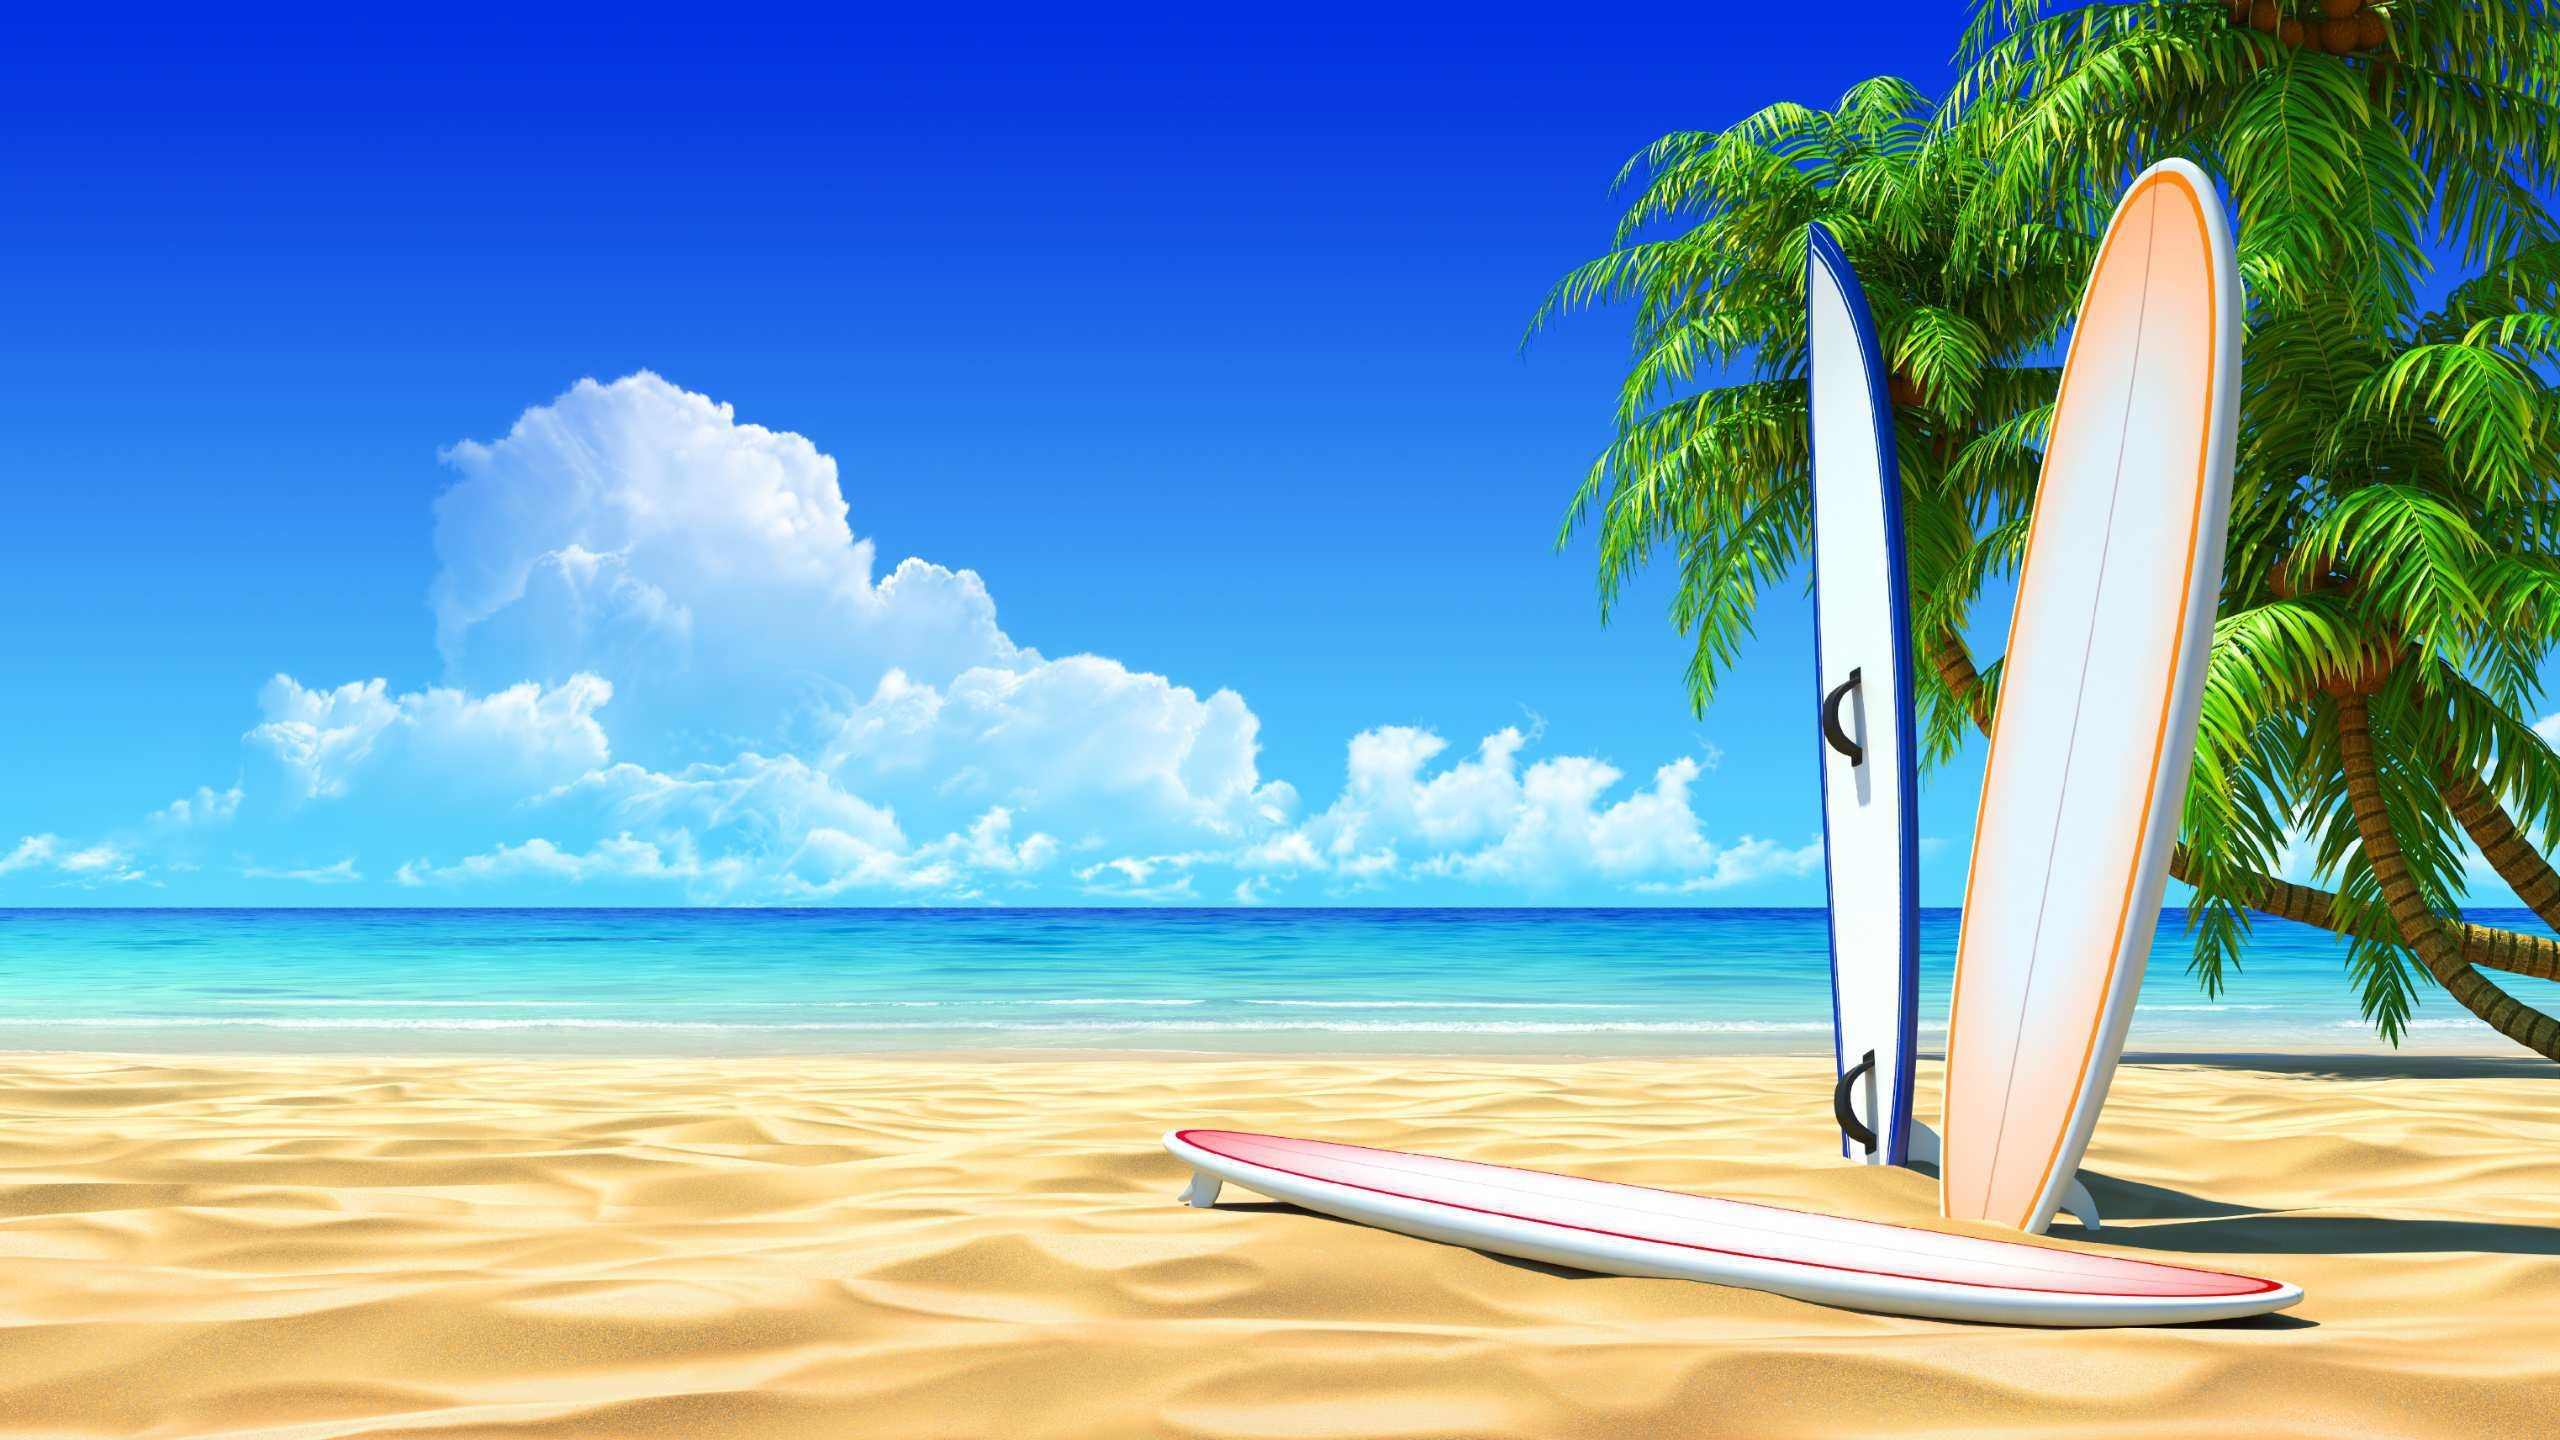 Surfing Screensavers and Wallpaper 68 images 2560x1440